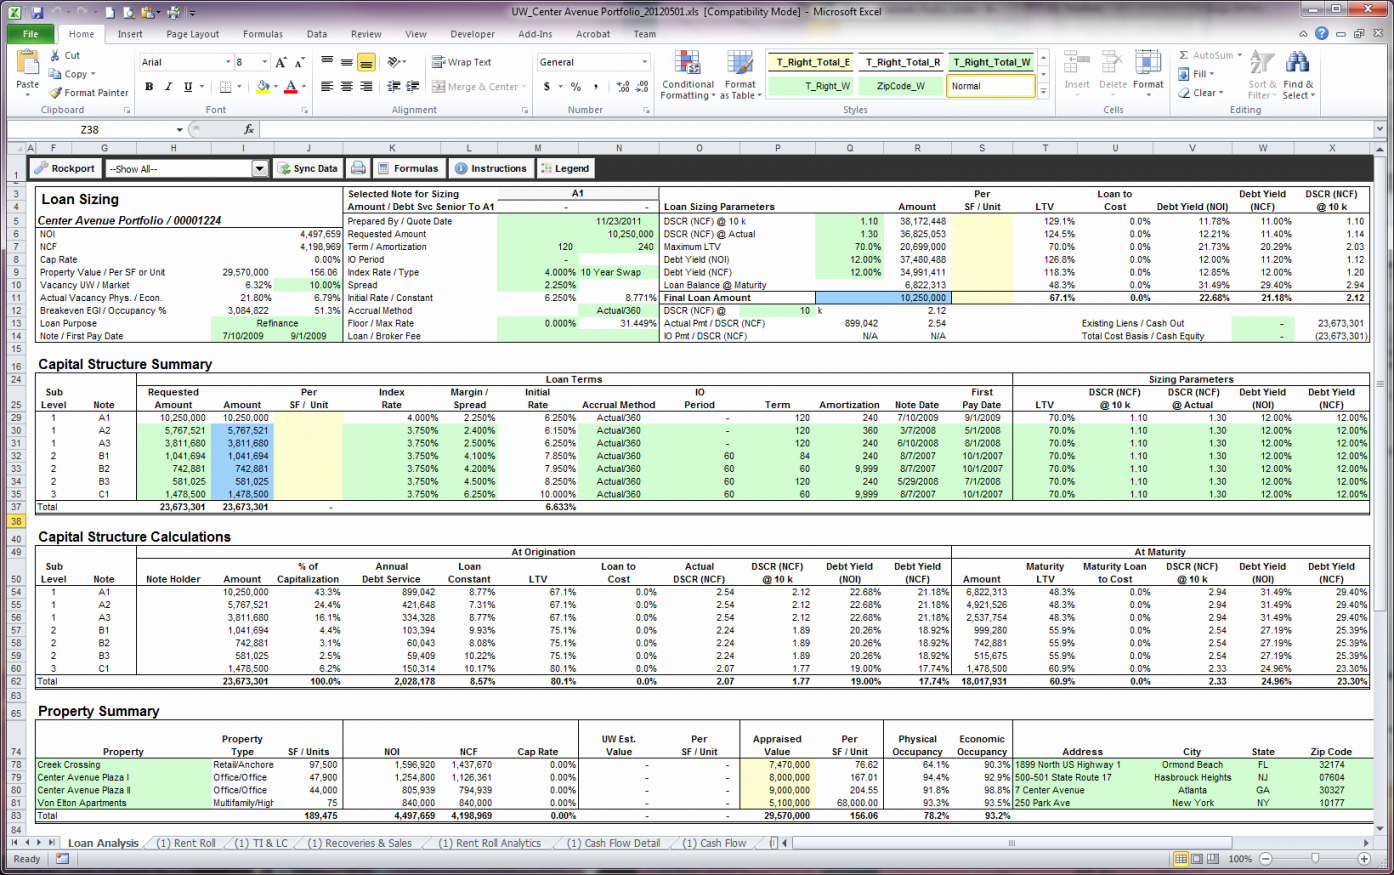 Rental Property Spreadsheet Excel Uk Intended For Free Property Management Spreadsheet Excel Template For Trackingl